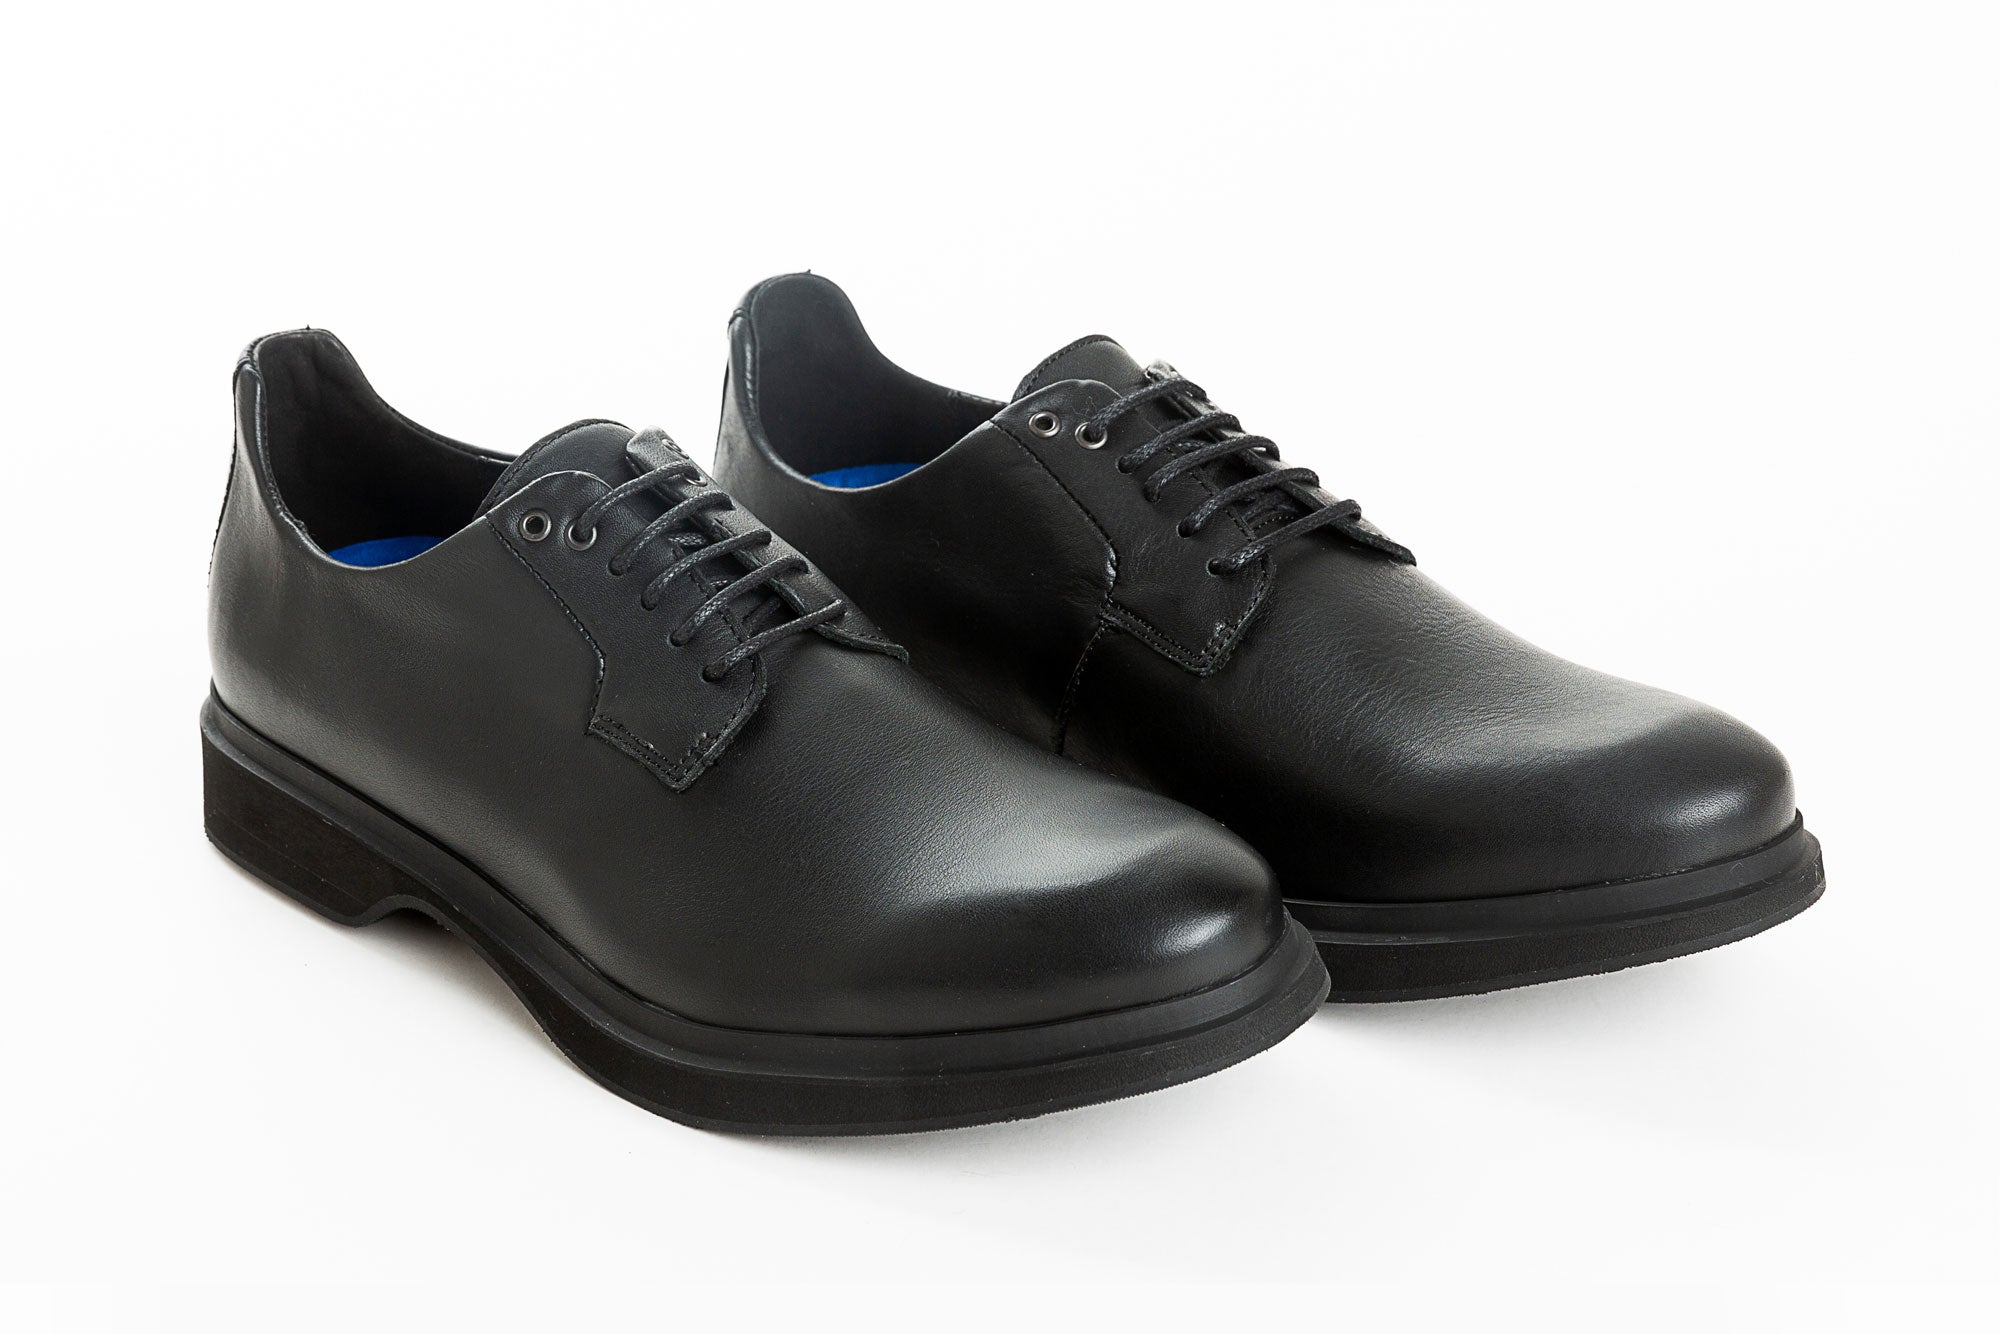 Most Comfortable Mens Dress Shoes For